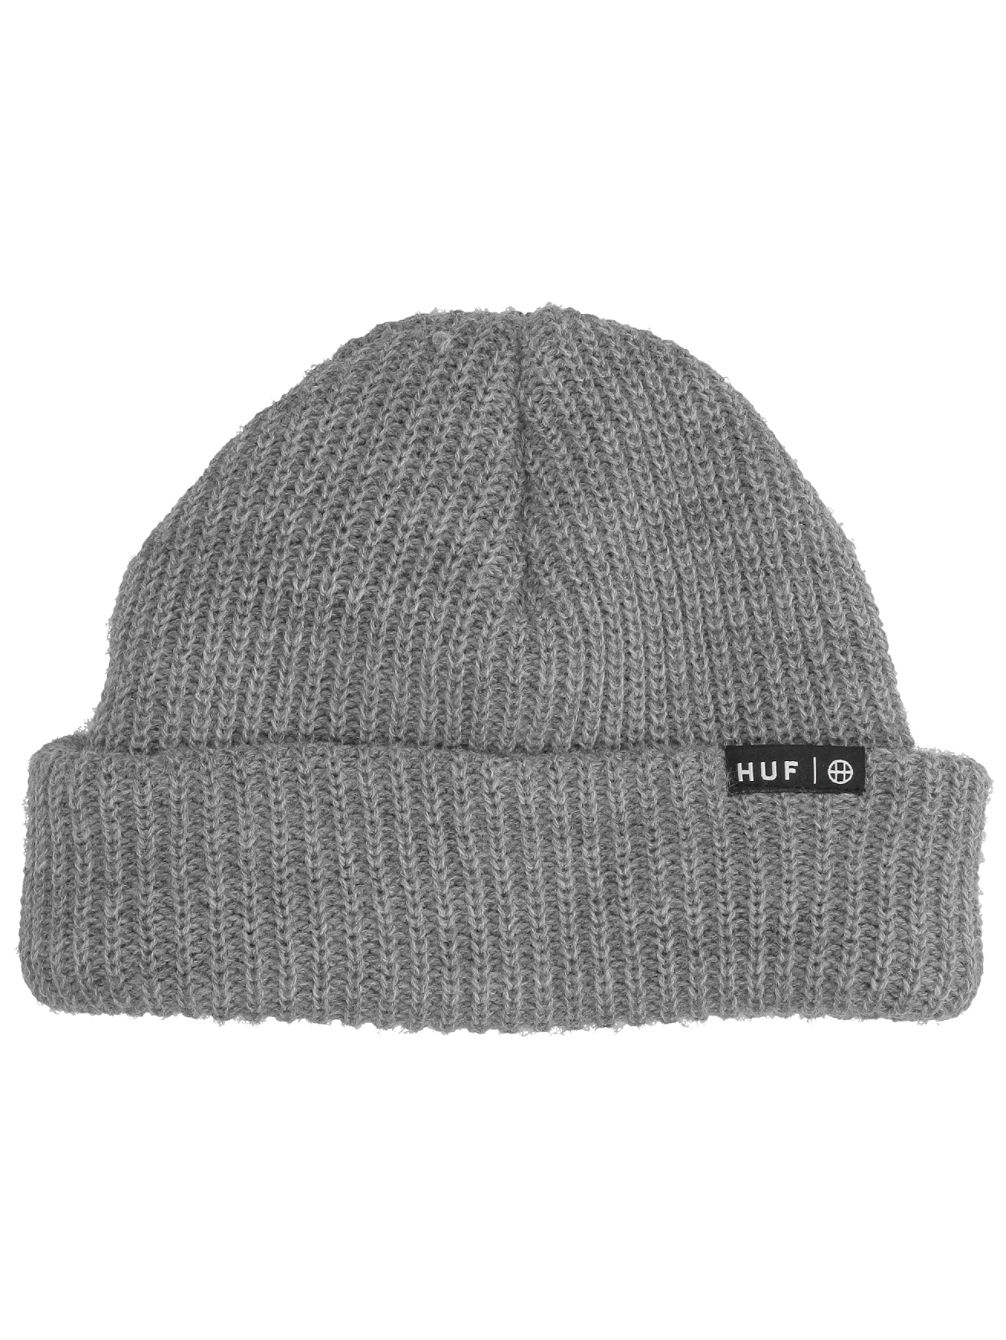 52aae5d4033da Buy HUF Usual Beanie online at Blue Tomato